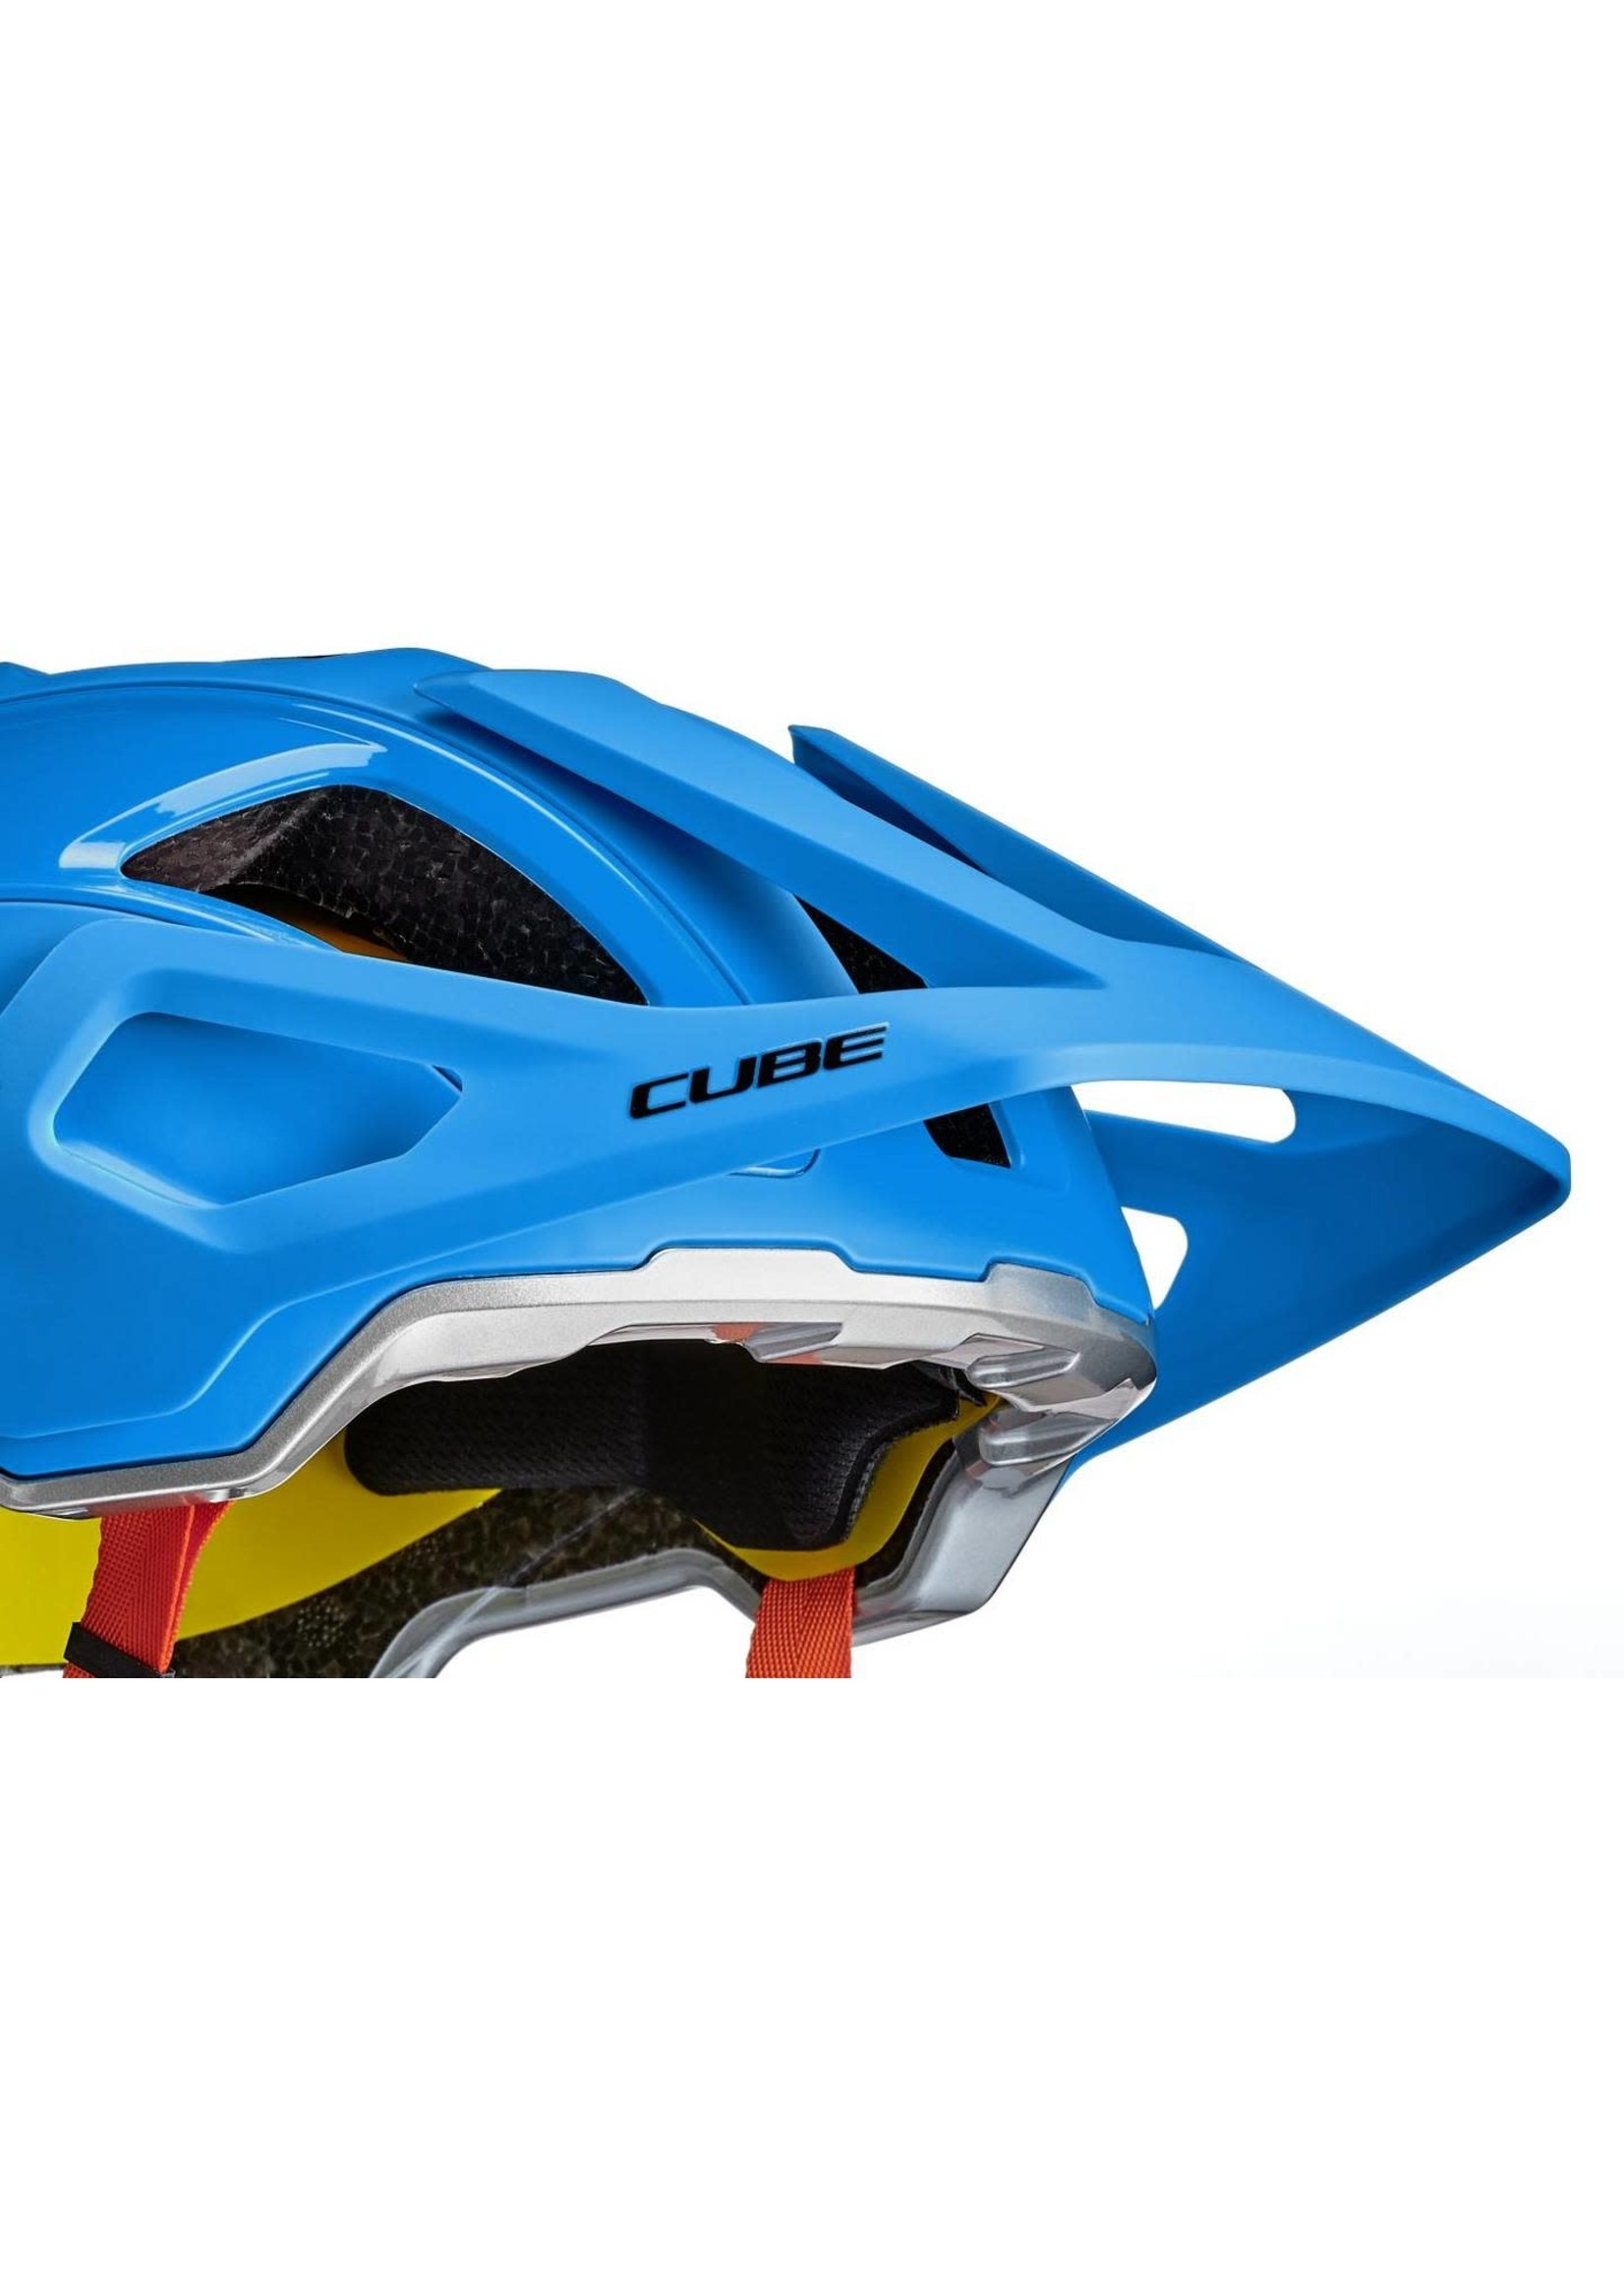 Cube Cube Strover X Actionteam MIPS Helmet